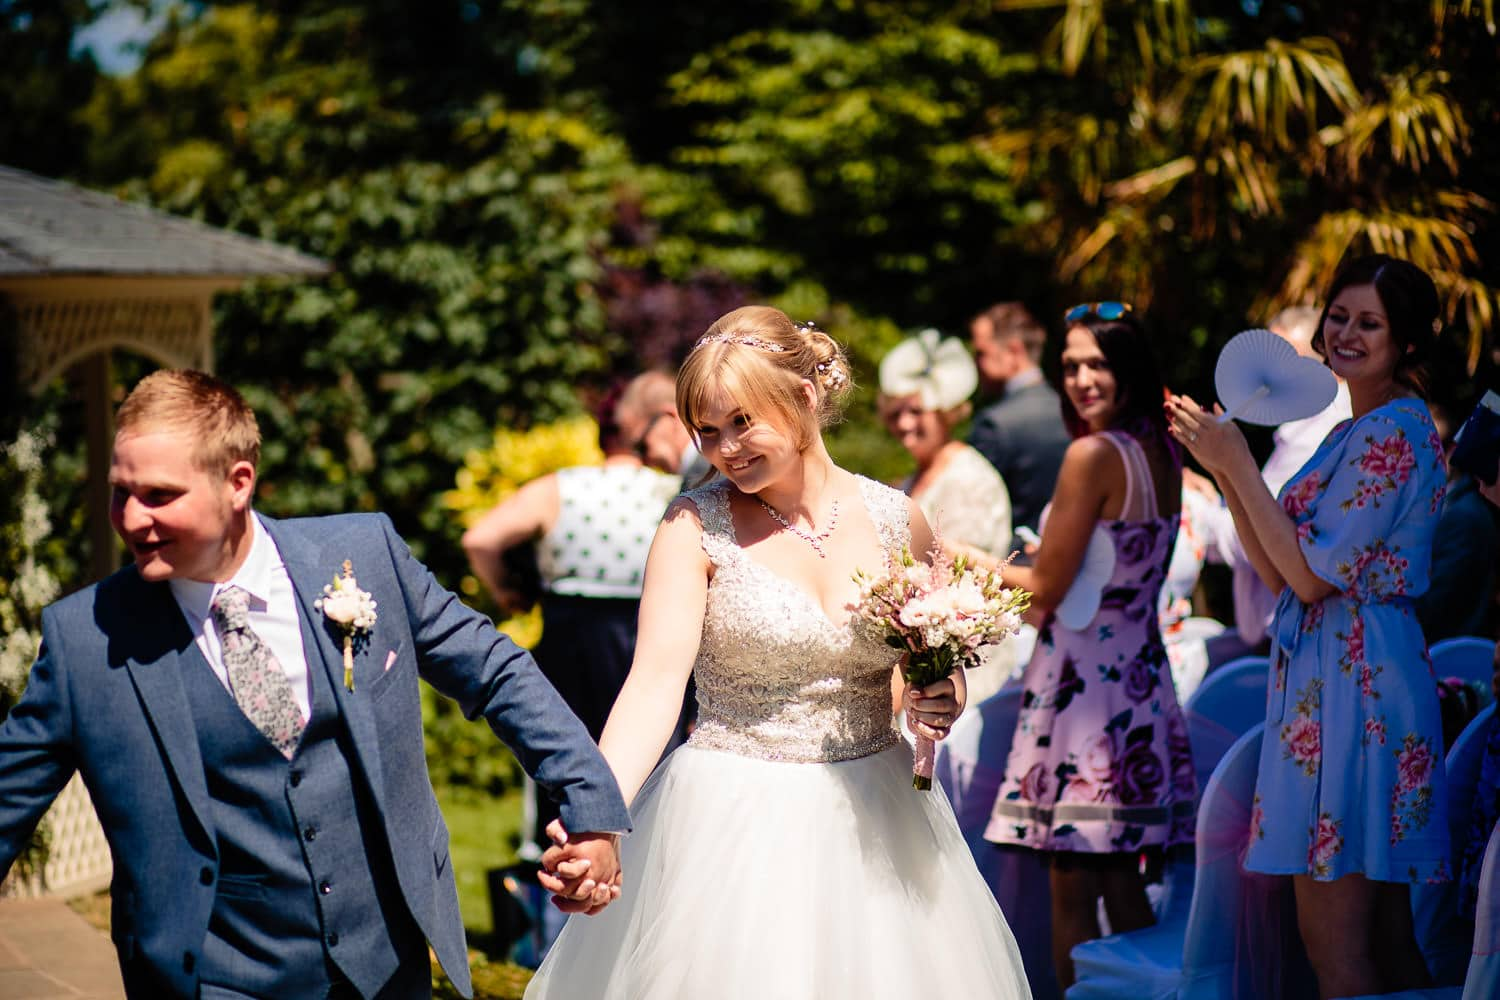 Warwick House Wedding Photography captures Warwickshire newlyweds walking down the aisle to applause of guests